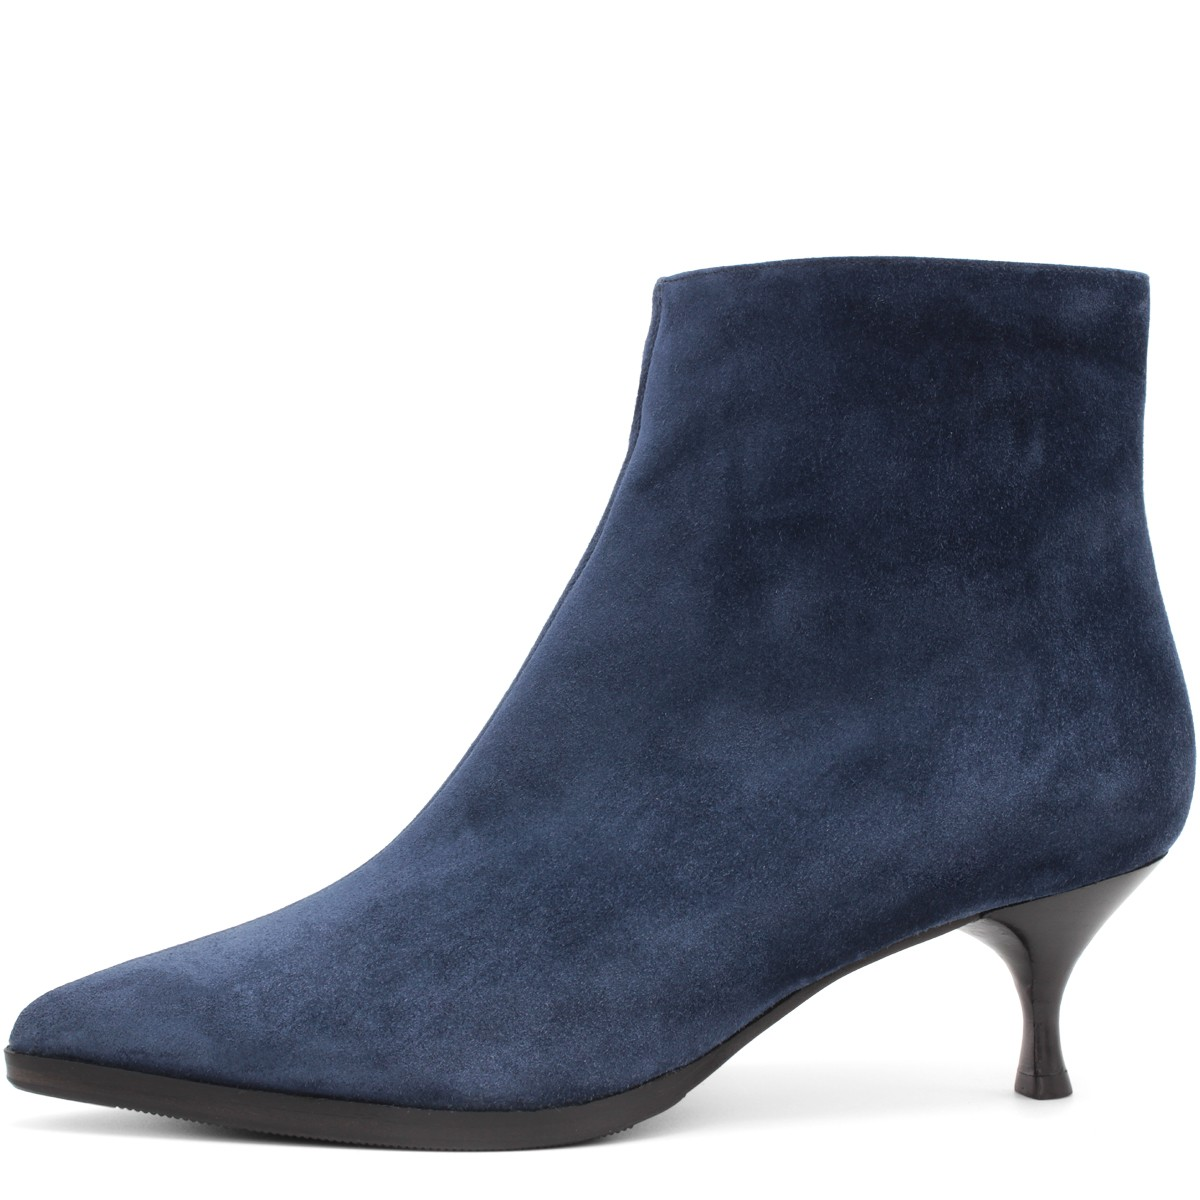 BLUE SUEDE STYLISH WOOL FUR LINED ANKLE BOOTS